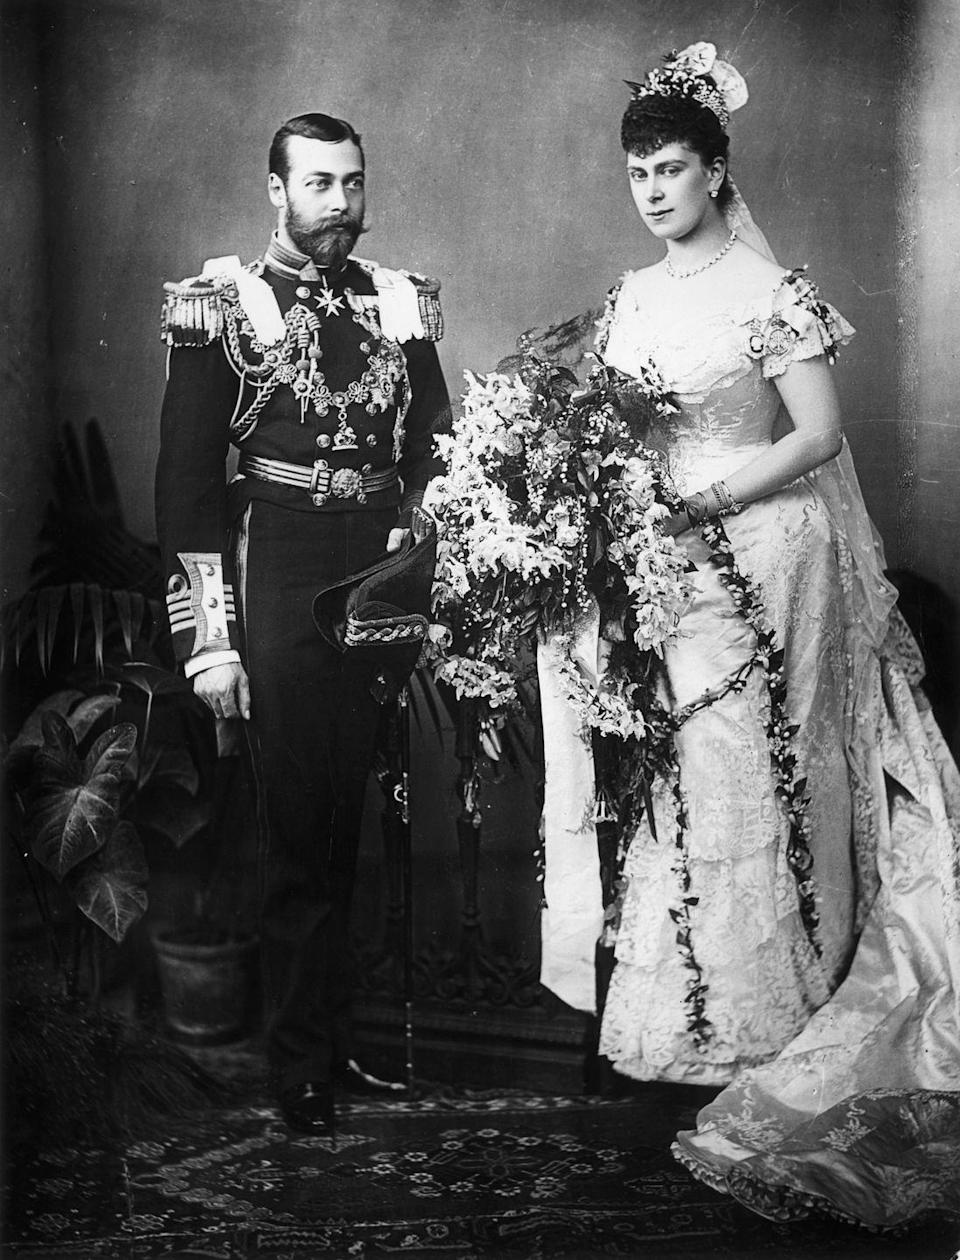 """<p>King George V proposed to Mary of Teck in May 1893 under unusual circumstances. Mary was <a href=""""https://www.thehistorypress.co.uk/articles/royal-engagement-rings-through-the-centuries/"""" rel=""""nofollow noopener"""" target=""""_blank"""" data-ylk=""""slk:previously engaged to his older brother"""" class=""""link rapid-noclick-resp"""">previously engaged to his older brother</a>, Prince Albert Victor, who died of pneumonia during their engagement in 1892. The couple was pressured into marriage and wed on July 6, 1893. </p>"""